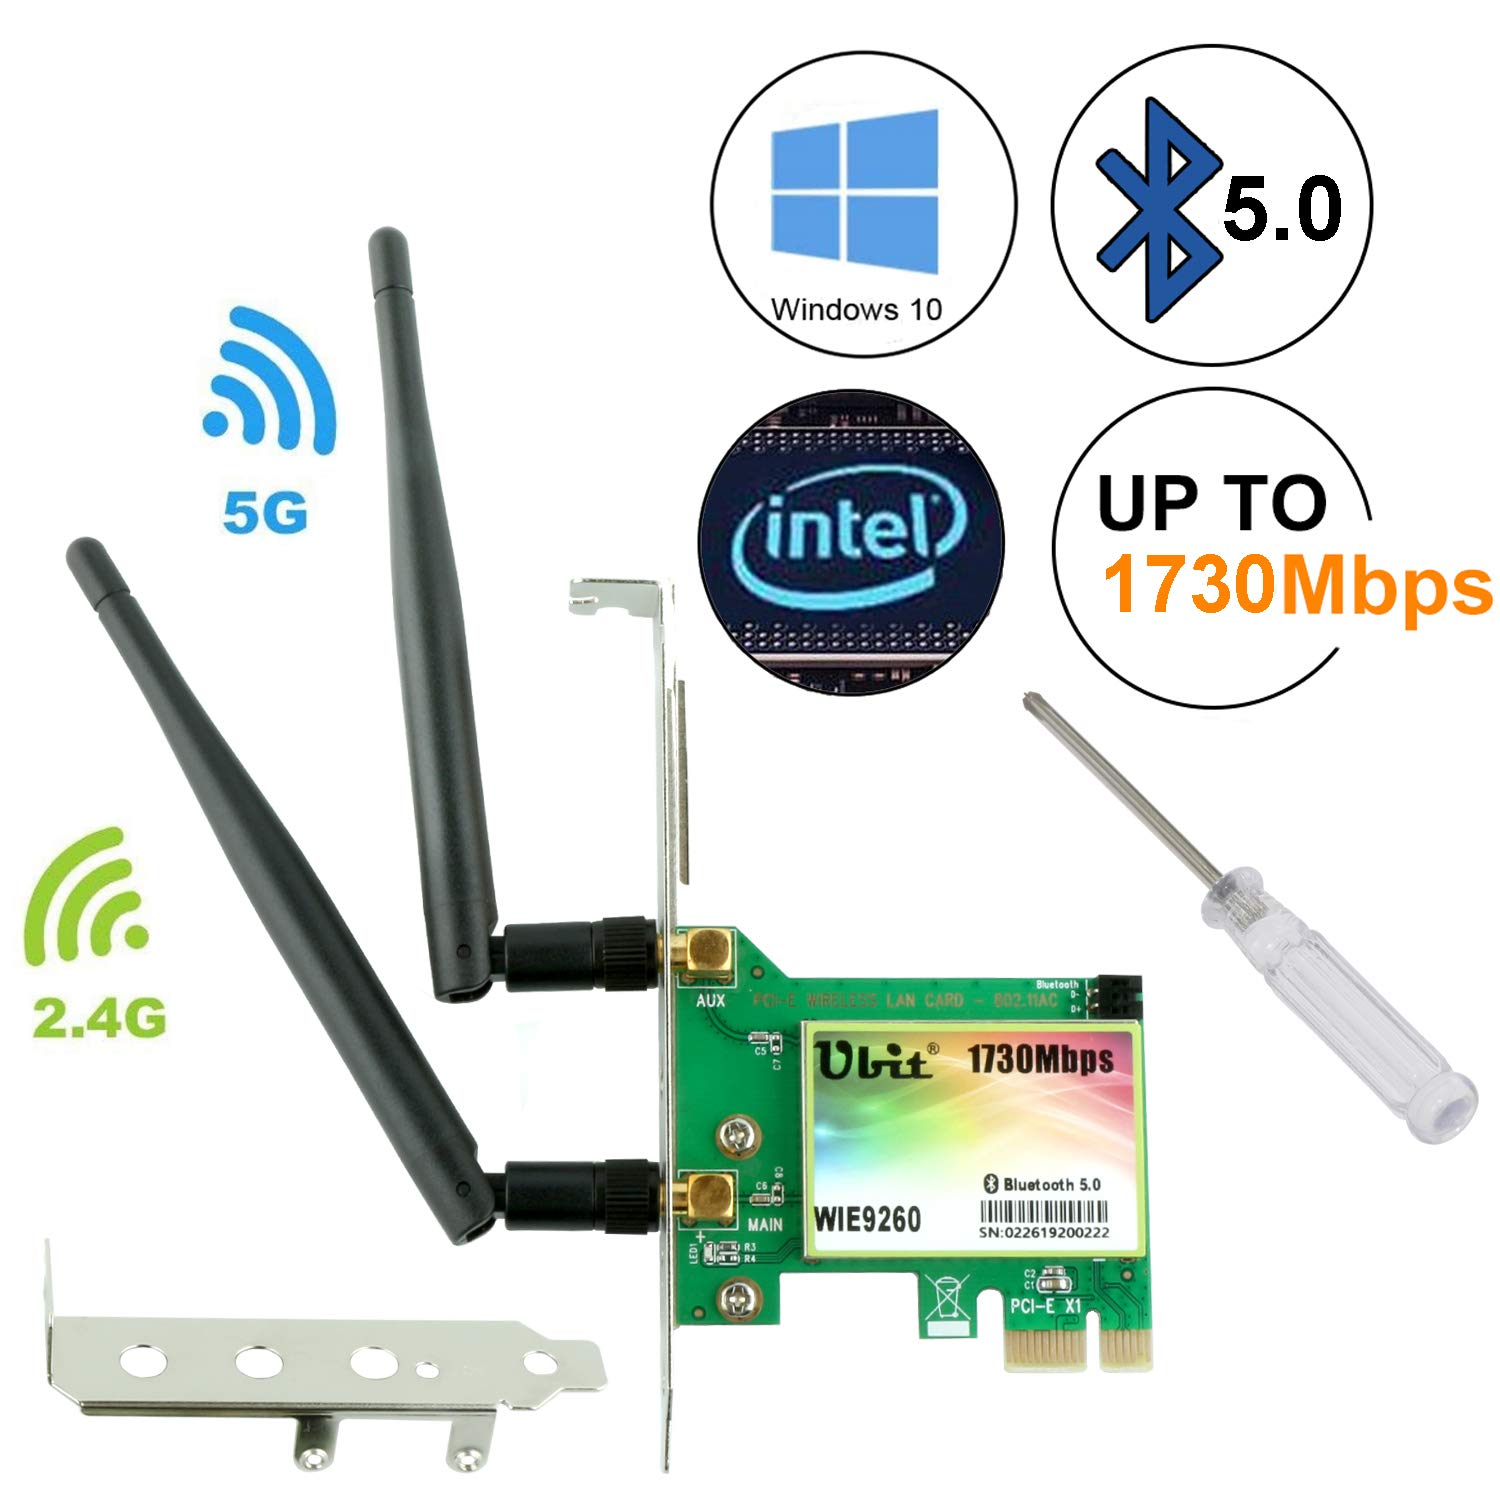 Ubit Gigabit AC 1730Mbps Bluetooth 5.0 Wireless WiFi Card, 802.11 AC Dual-Band WLAN 1730Mbps Network Card with Bluetooth 5.0, Dual-Band 2.4GHz 300Mbps or 5GHz 1430Mbps Network Card for WIN10(WIE9260)